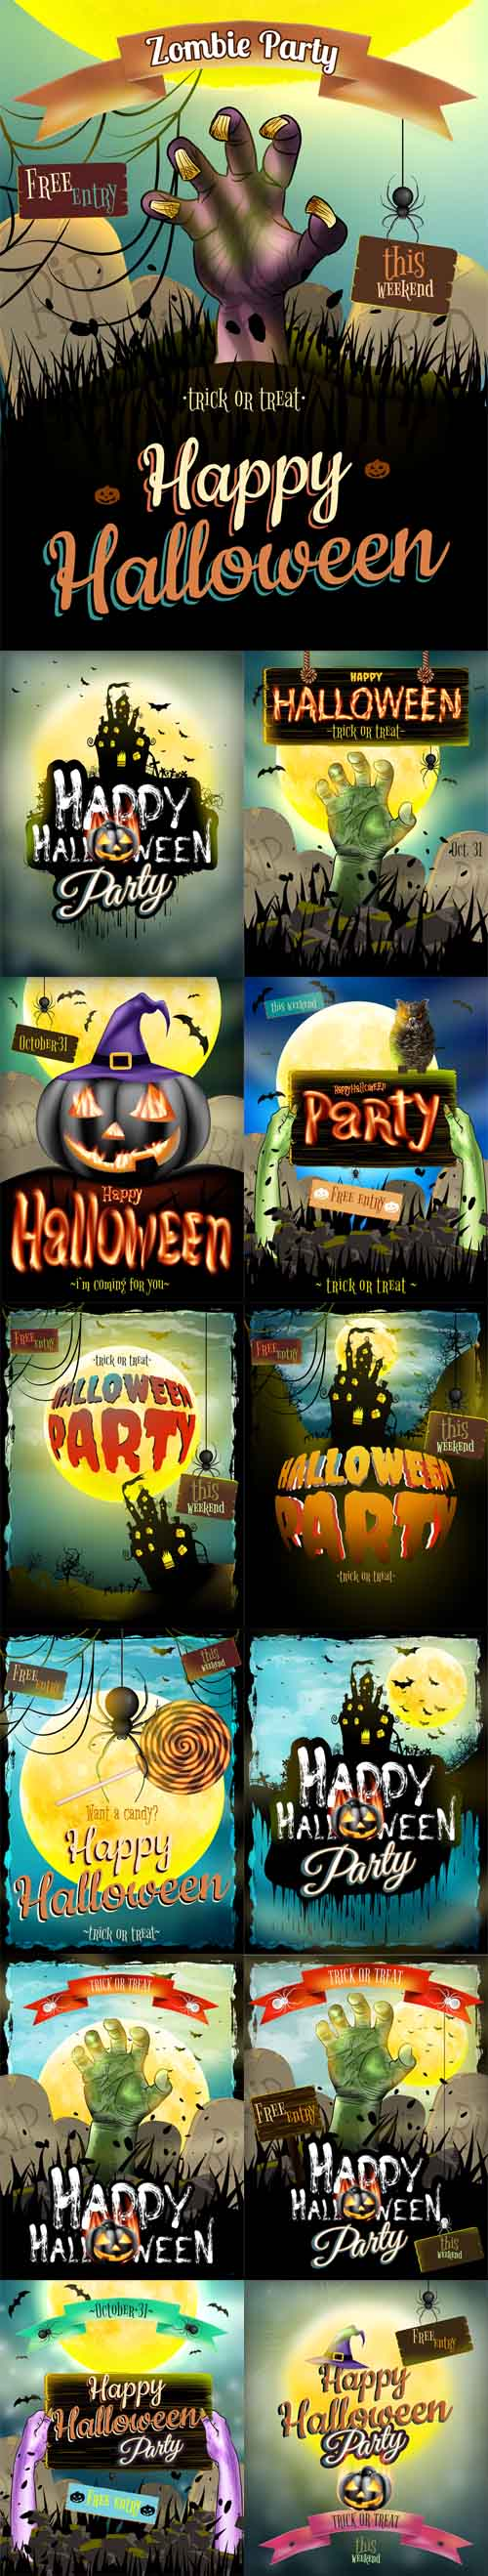 Vector Halloween Posters for Holiday